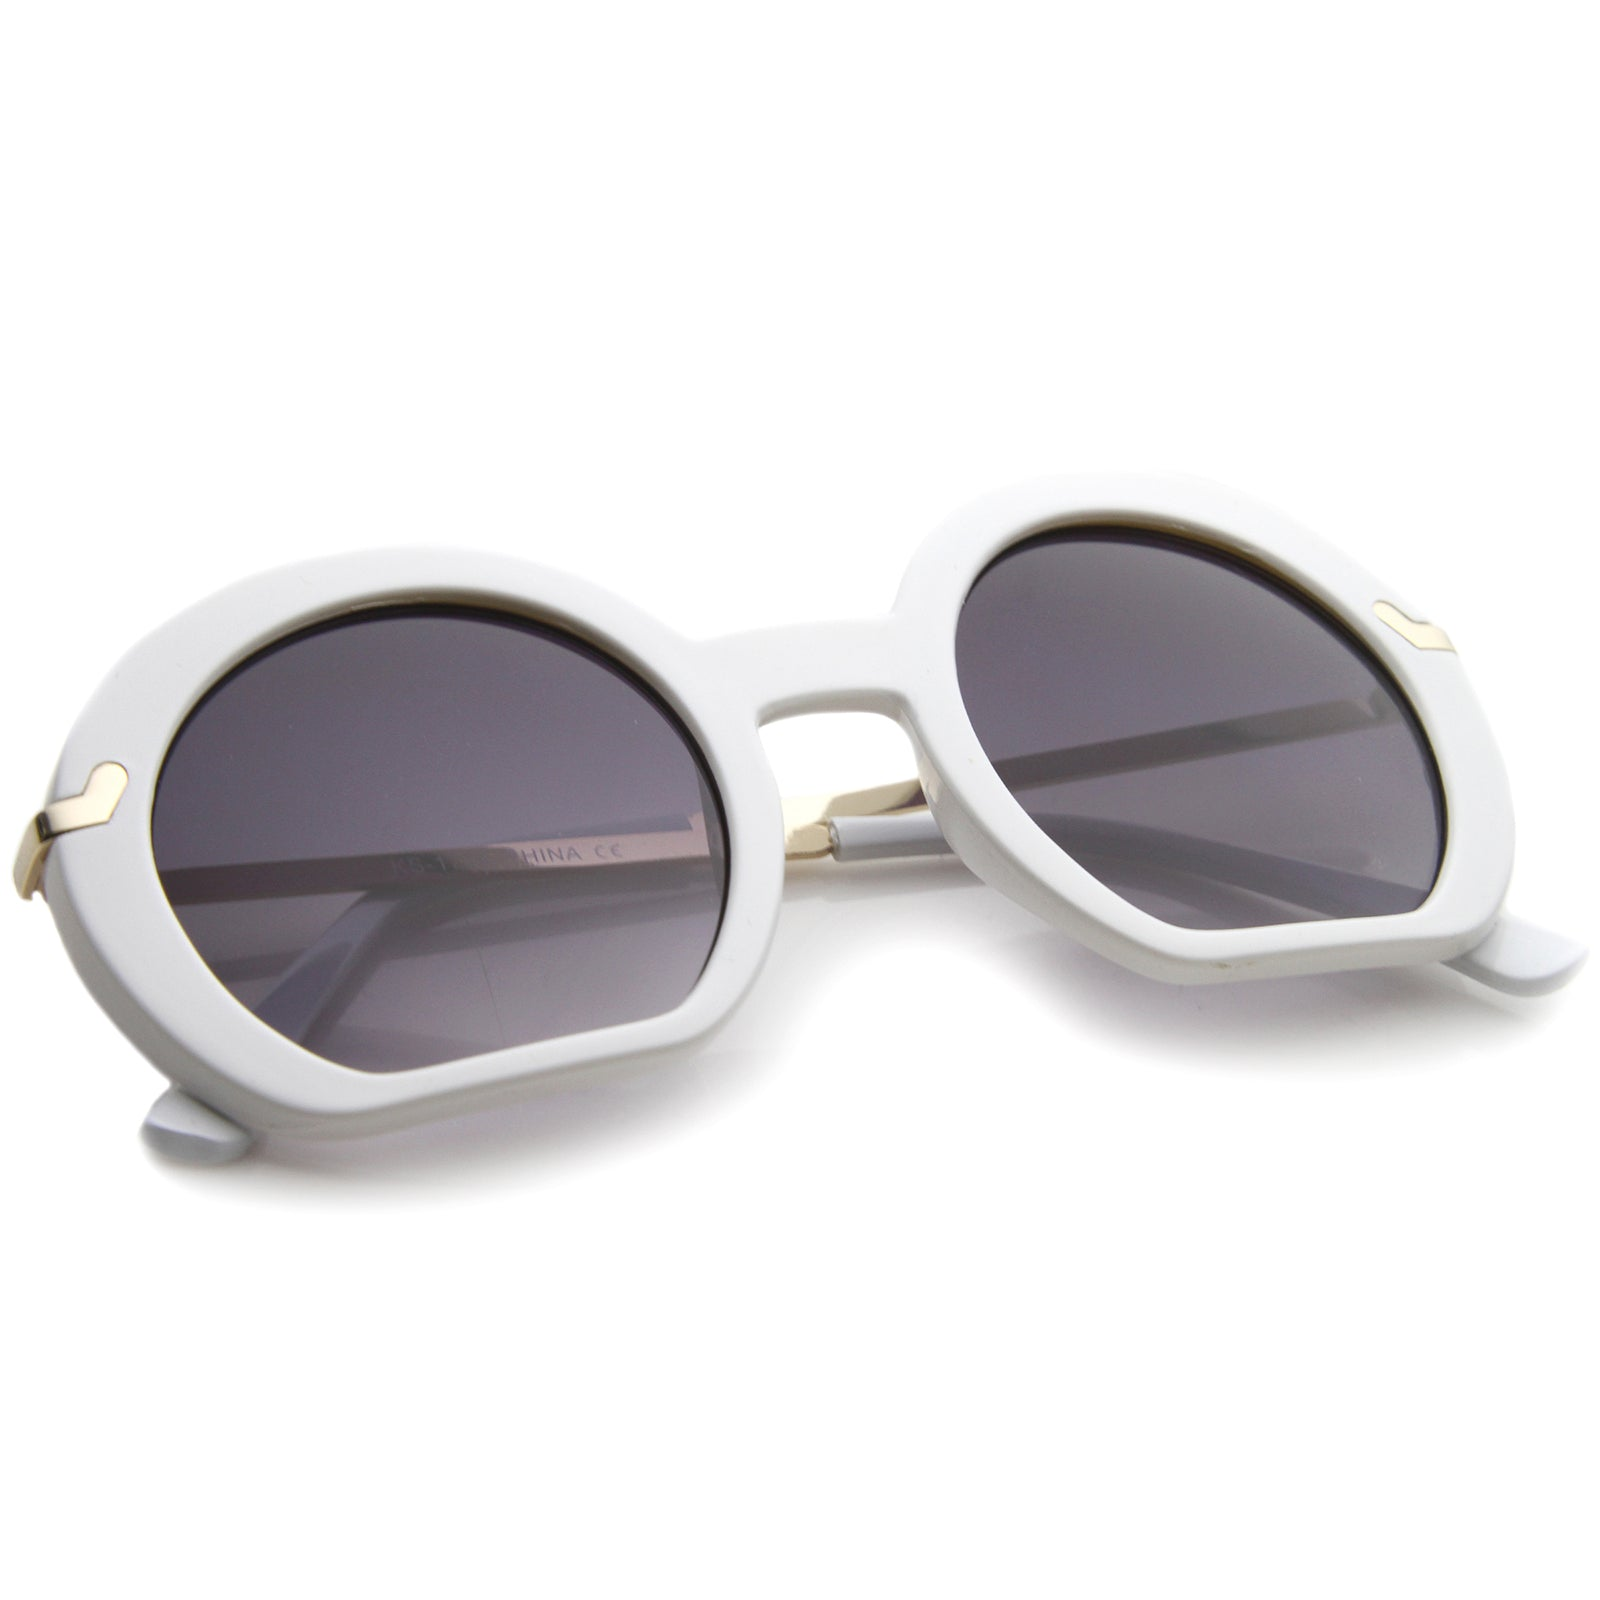 Women's High Fashion Flat Bottom Oversize Round Sunglasses 50mm - sunglass.la - 12